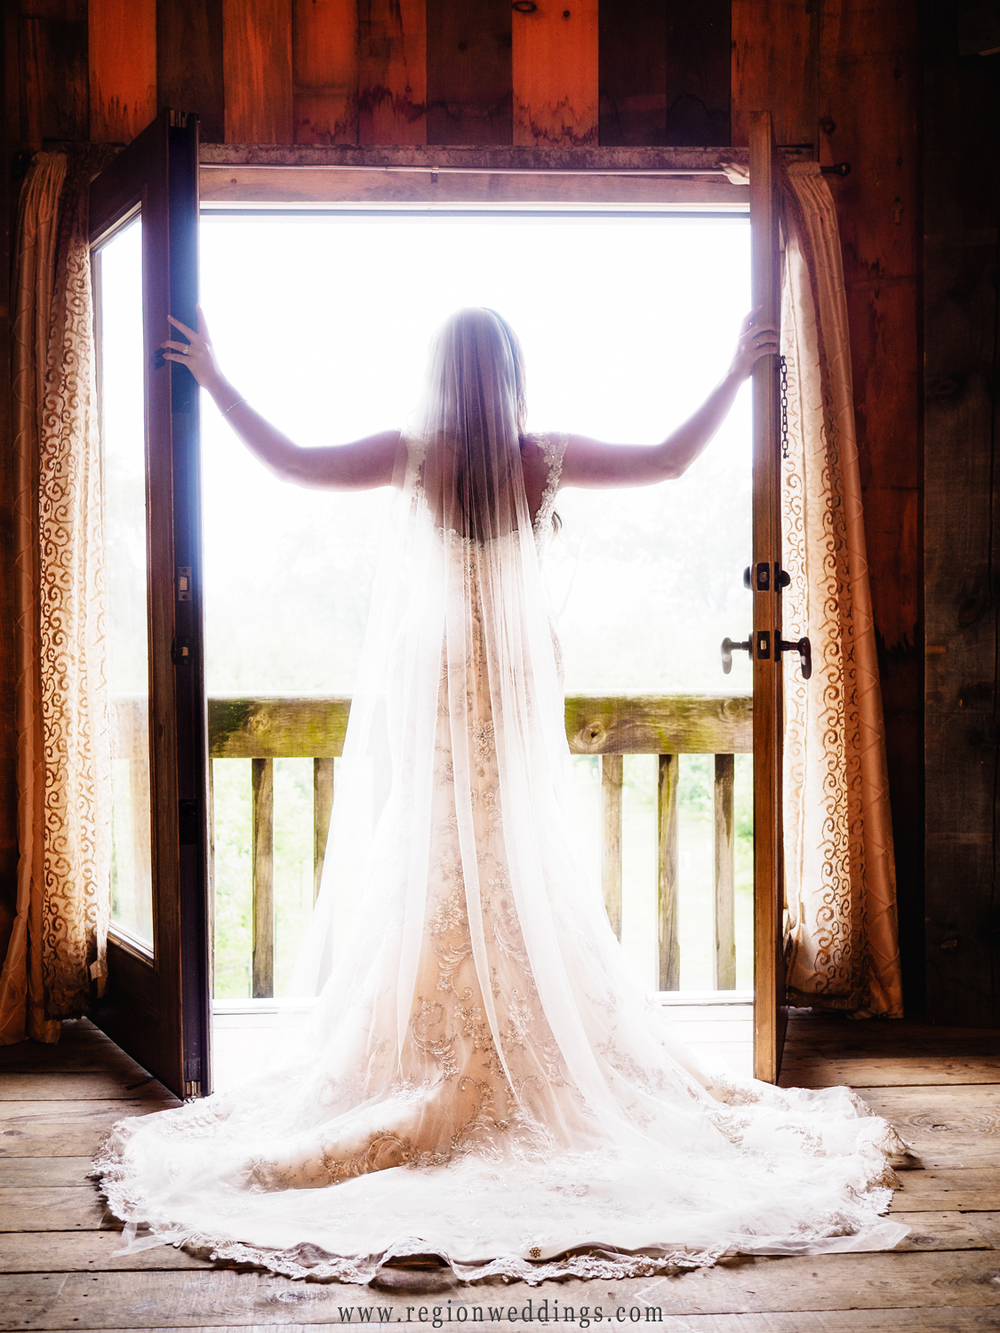 The bride opens the balcony doors in the bridal suite at County Line Orchard.